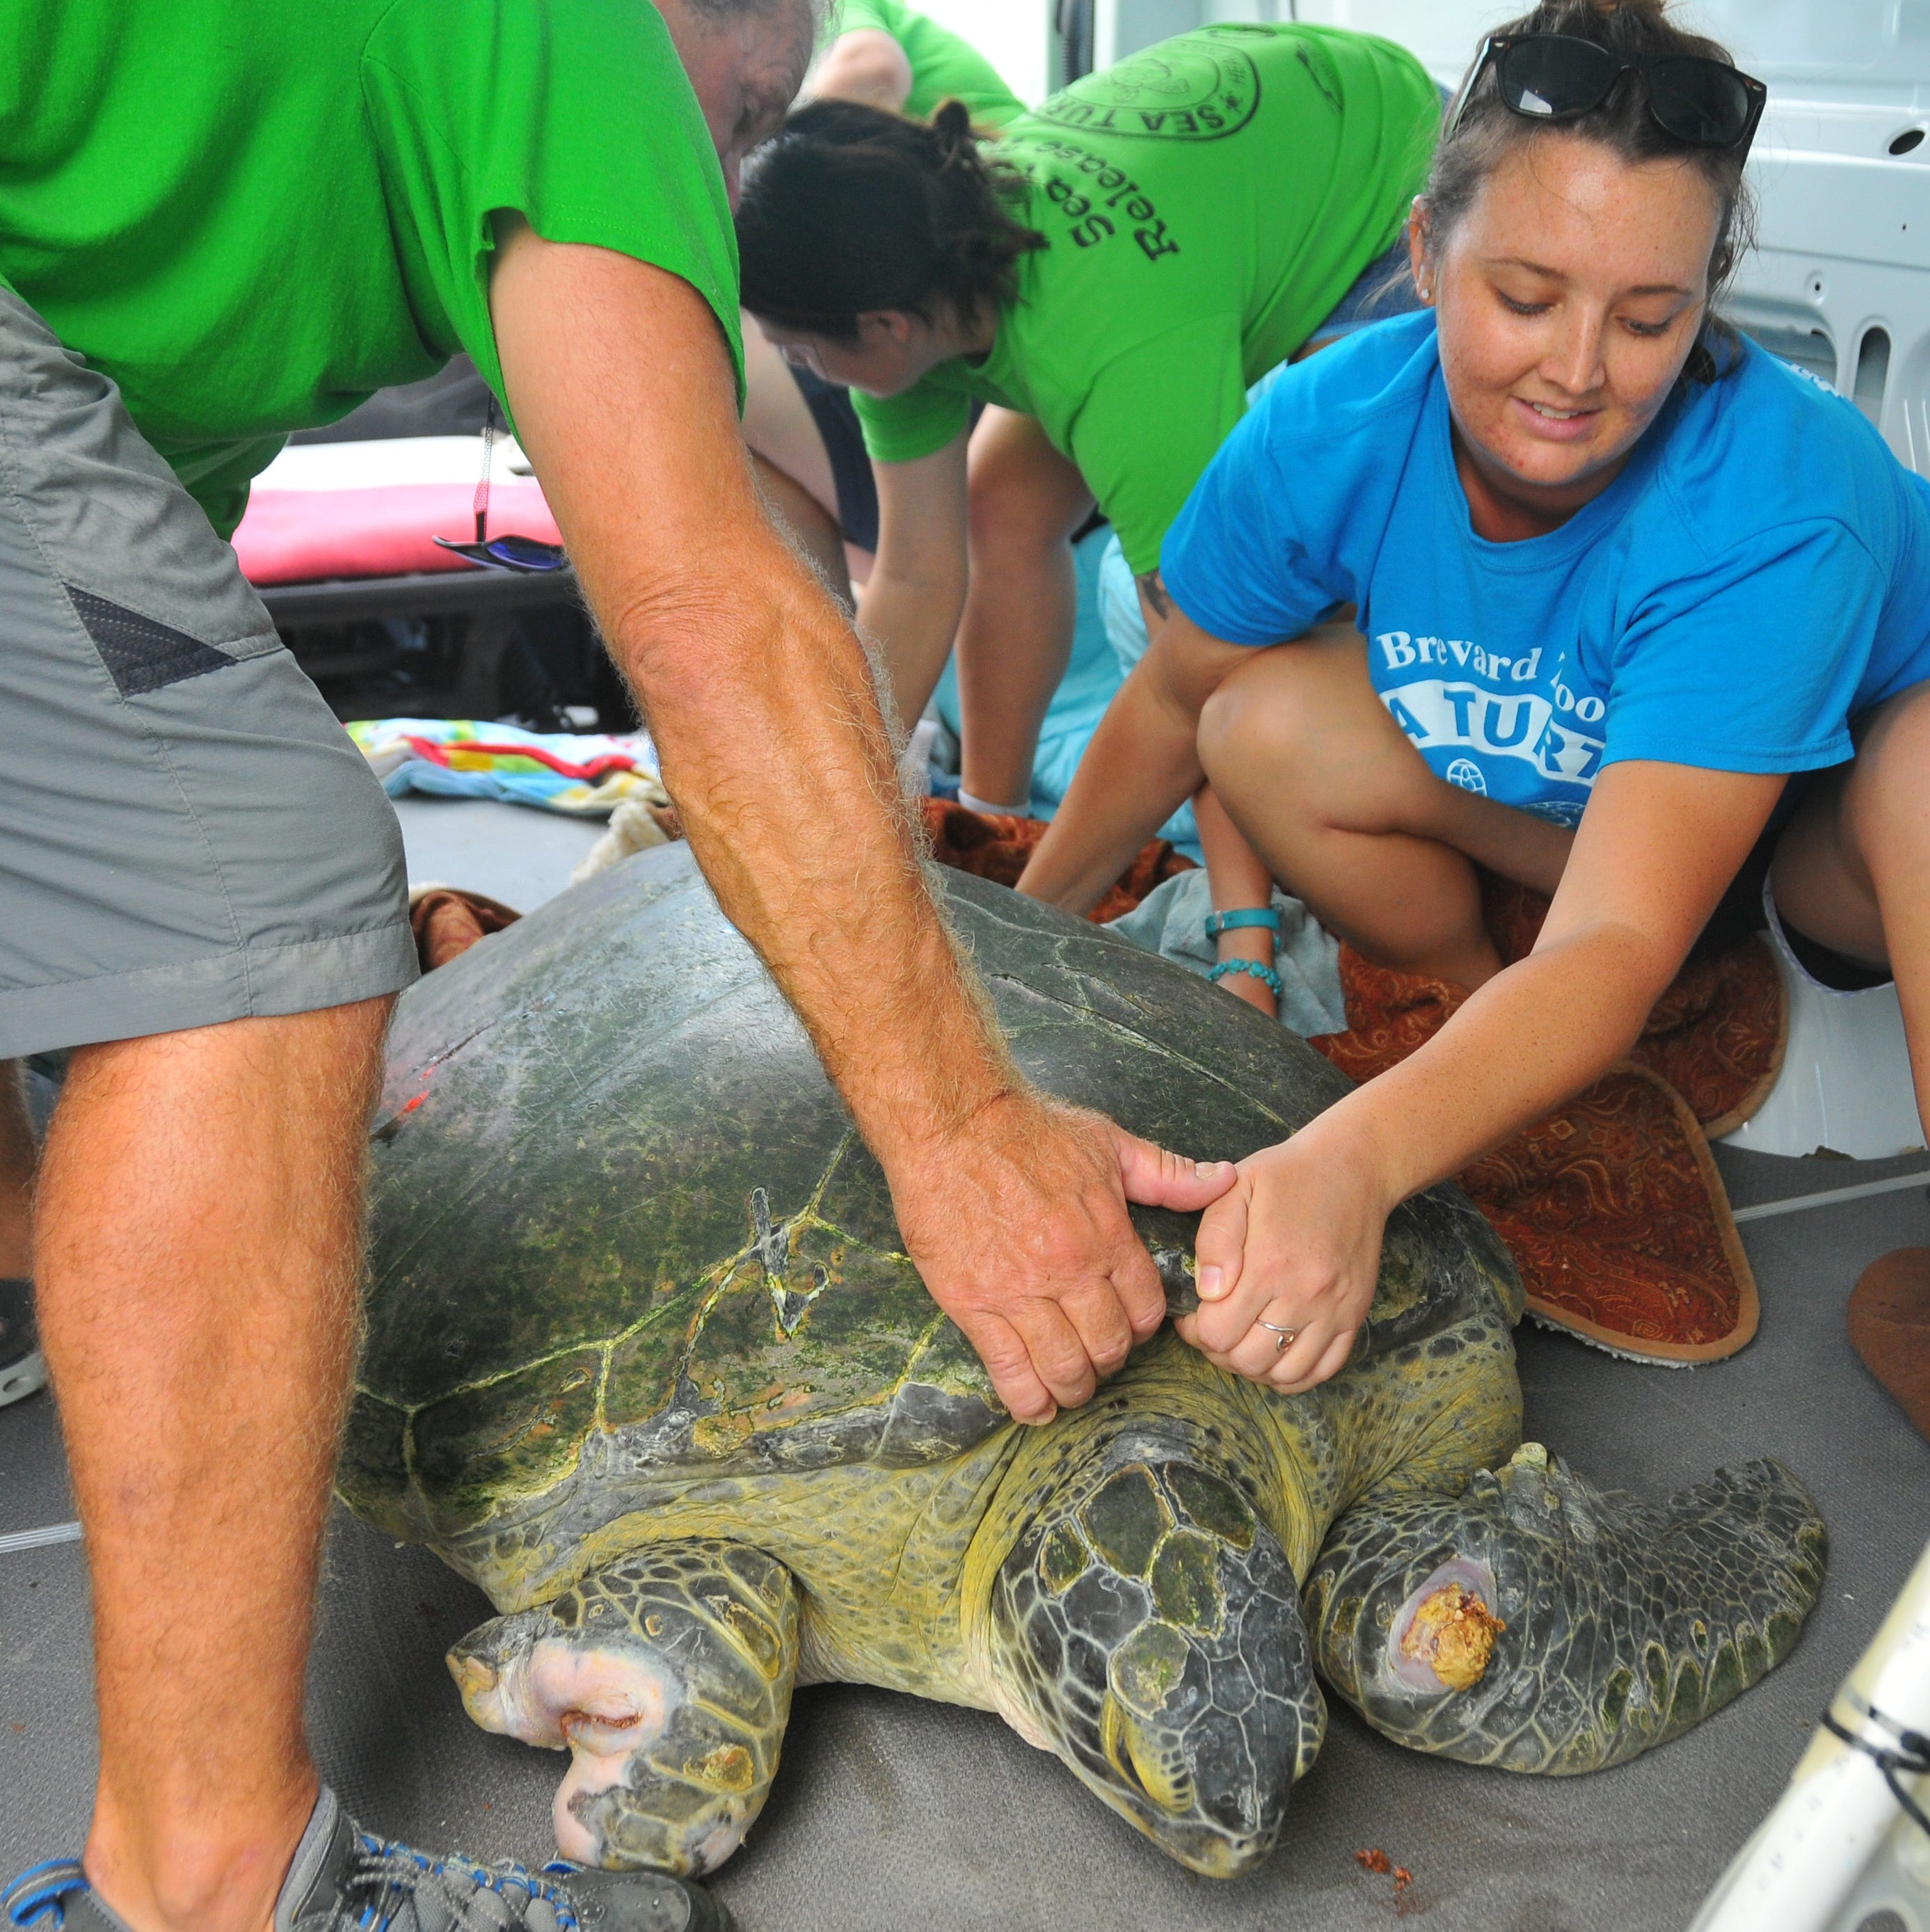 Guacamole the sea turtle, who survived a shark attack, released back to sea in Cocoa Beach